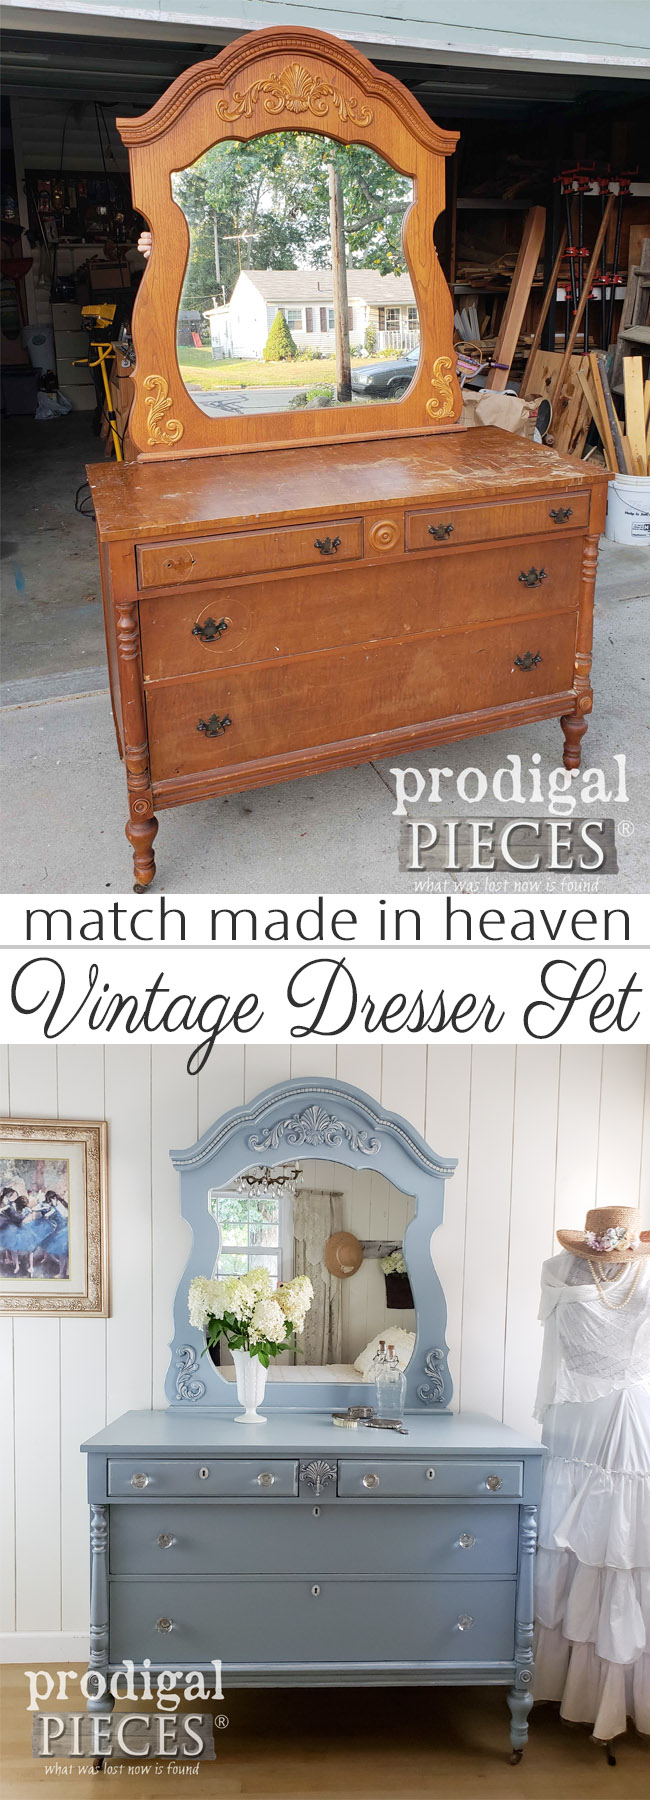 Fantastic! This cast-off mirror is married to this antique dresser for a lovely upcycled dresser set makeover by Larissa of Prodigal Pieces | See the details at prodigalpieces.com #prodigalpieces #furniture #homedecor #handmade #diy